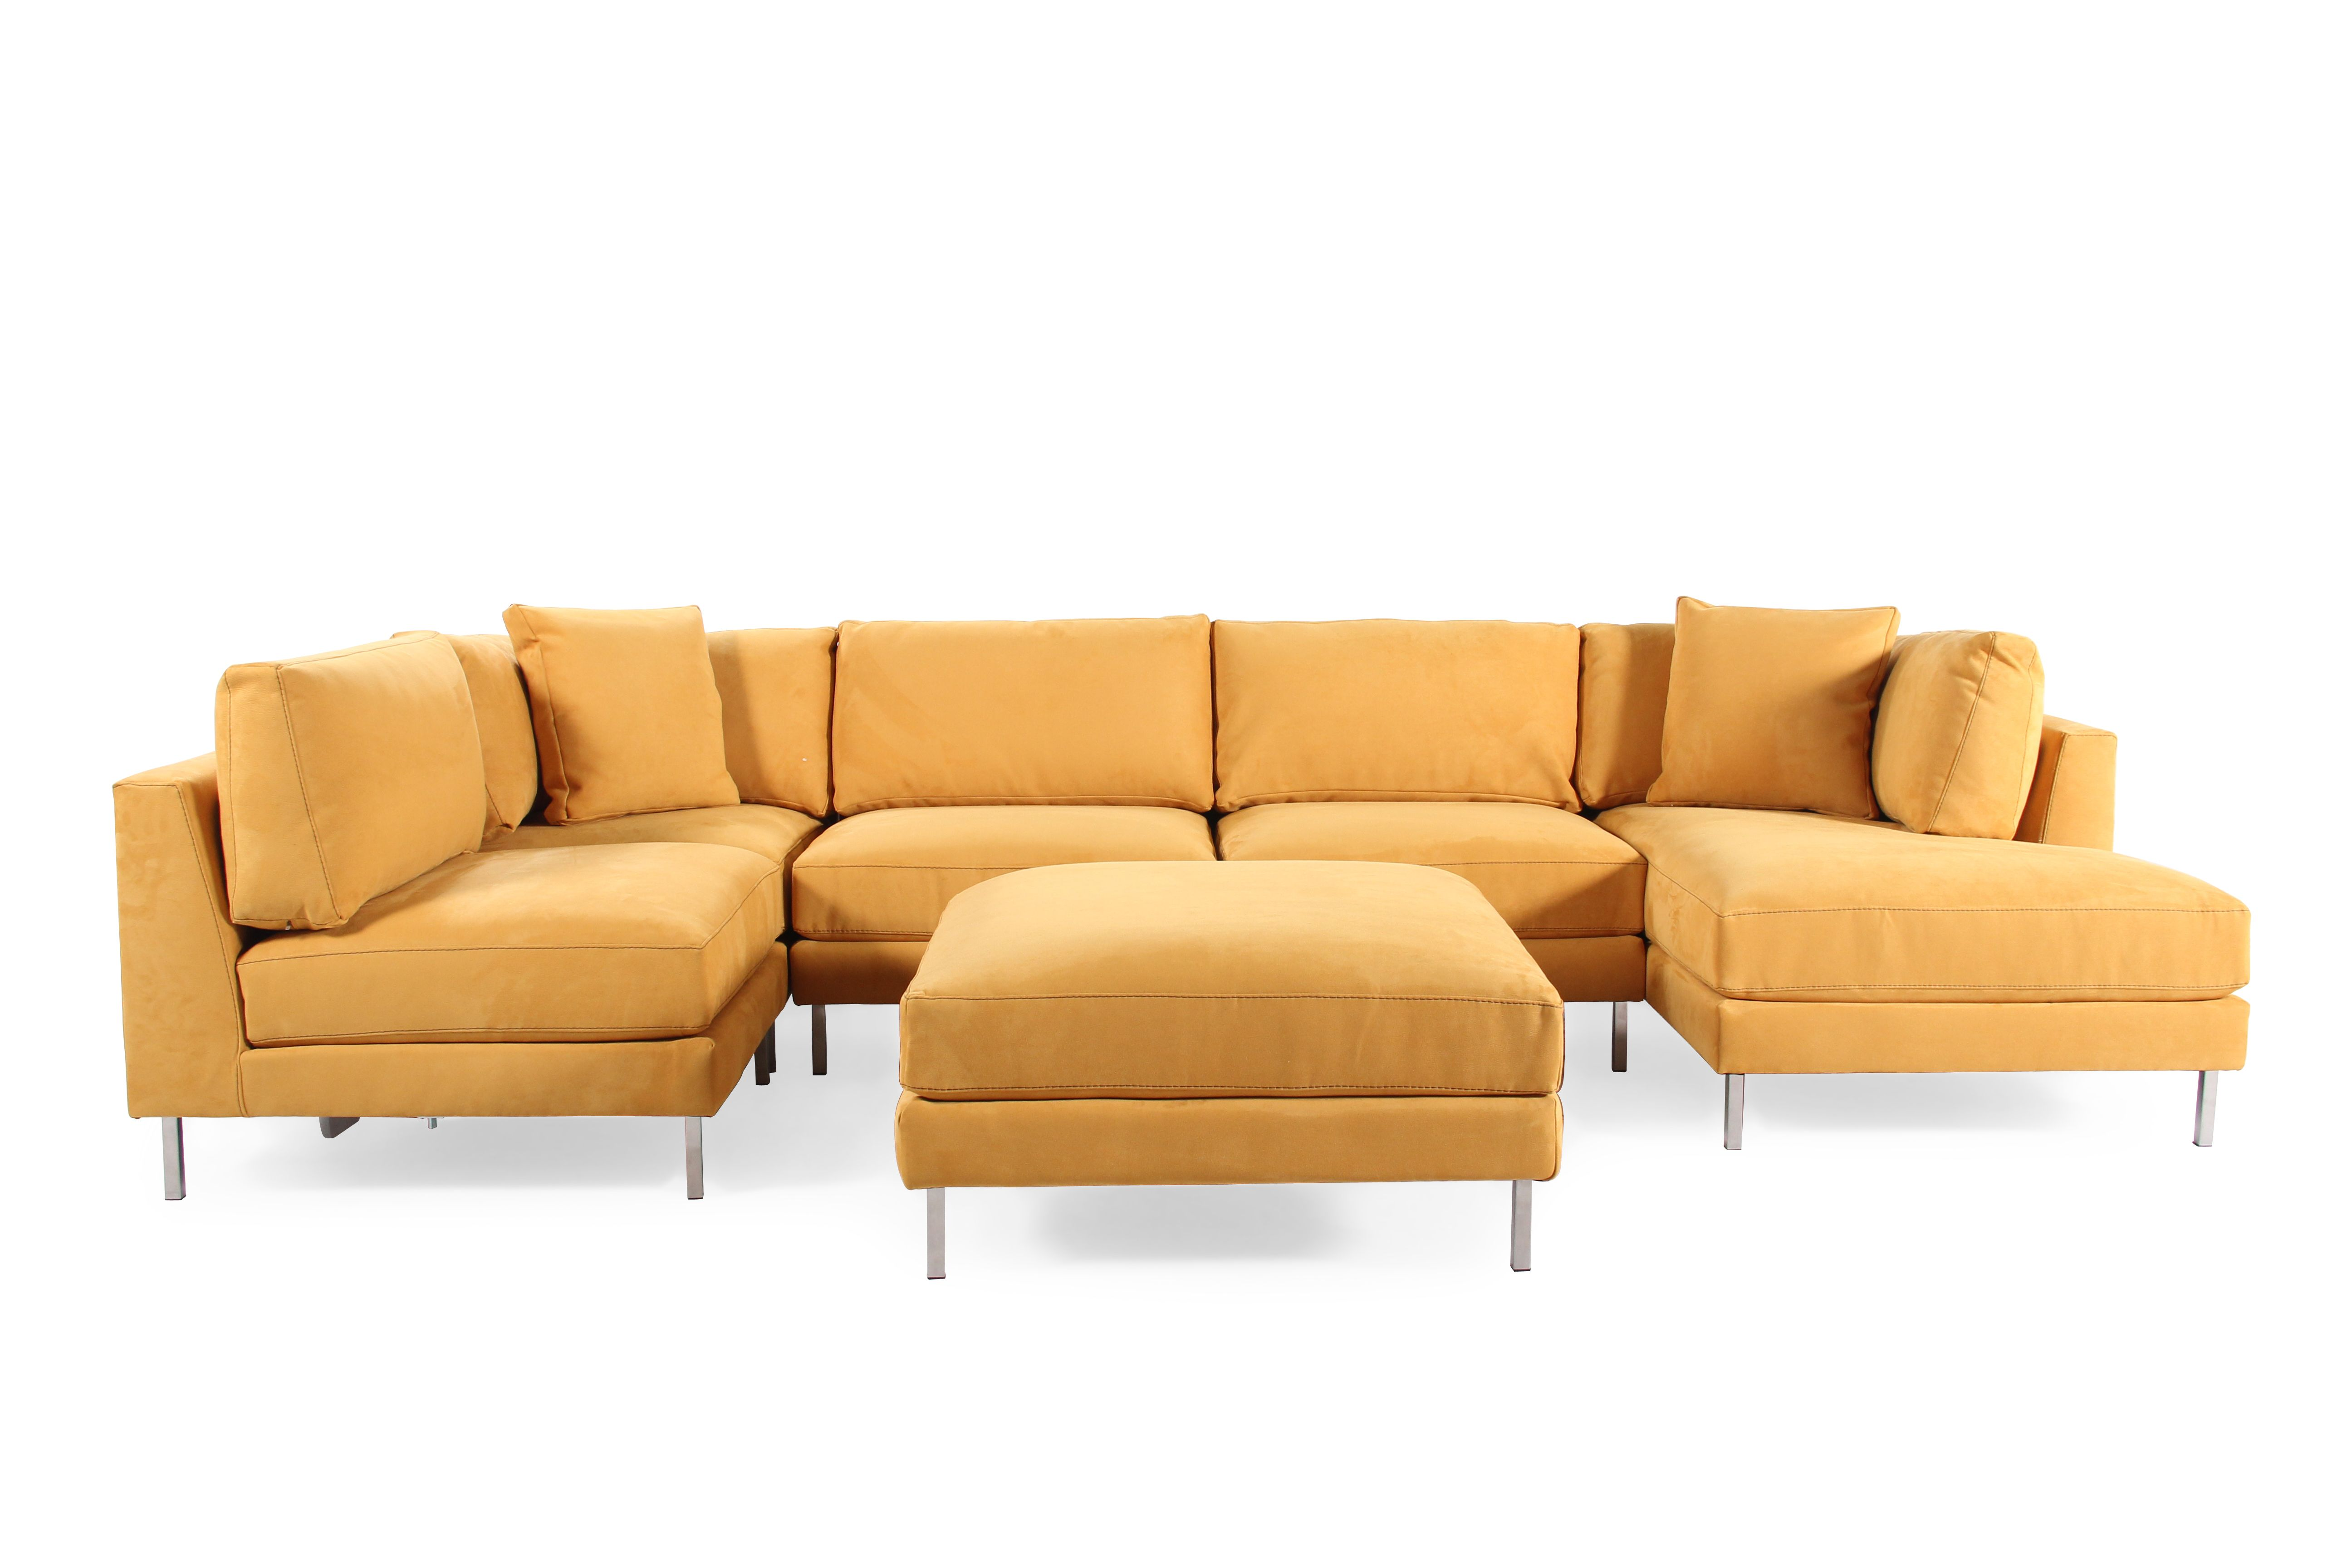 Jonathan Louis Remy Six Piece Sectional